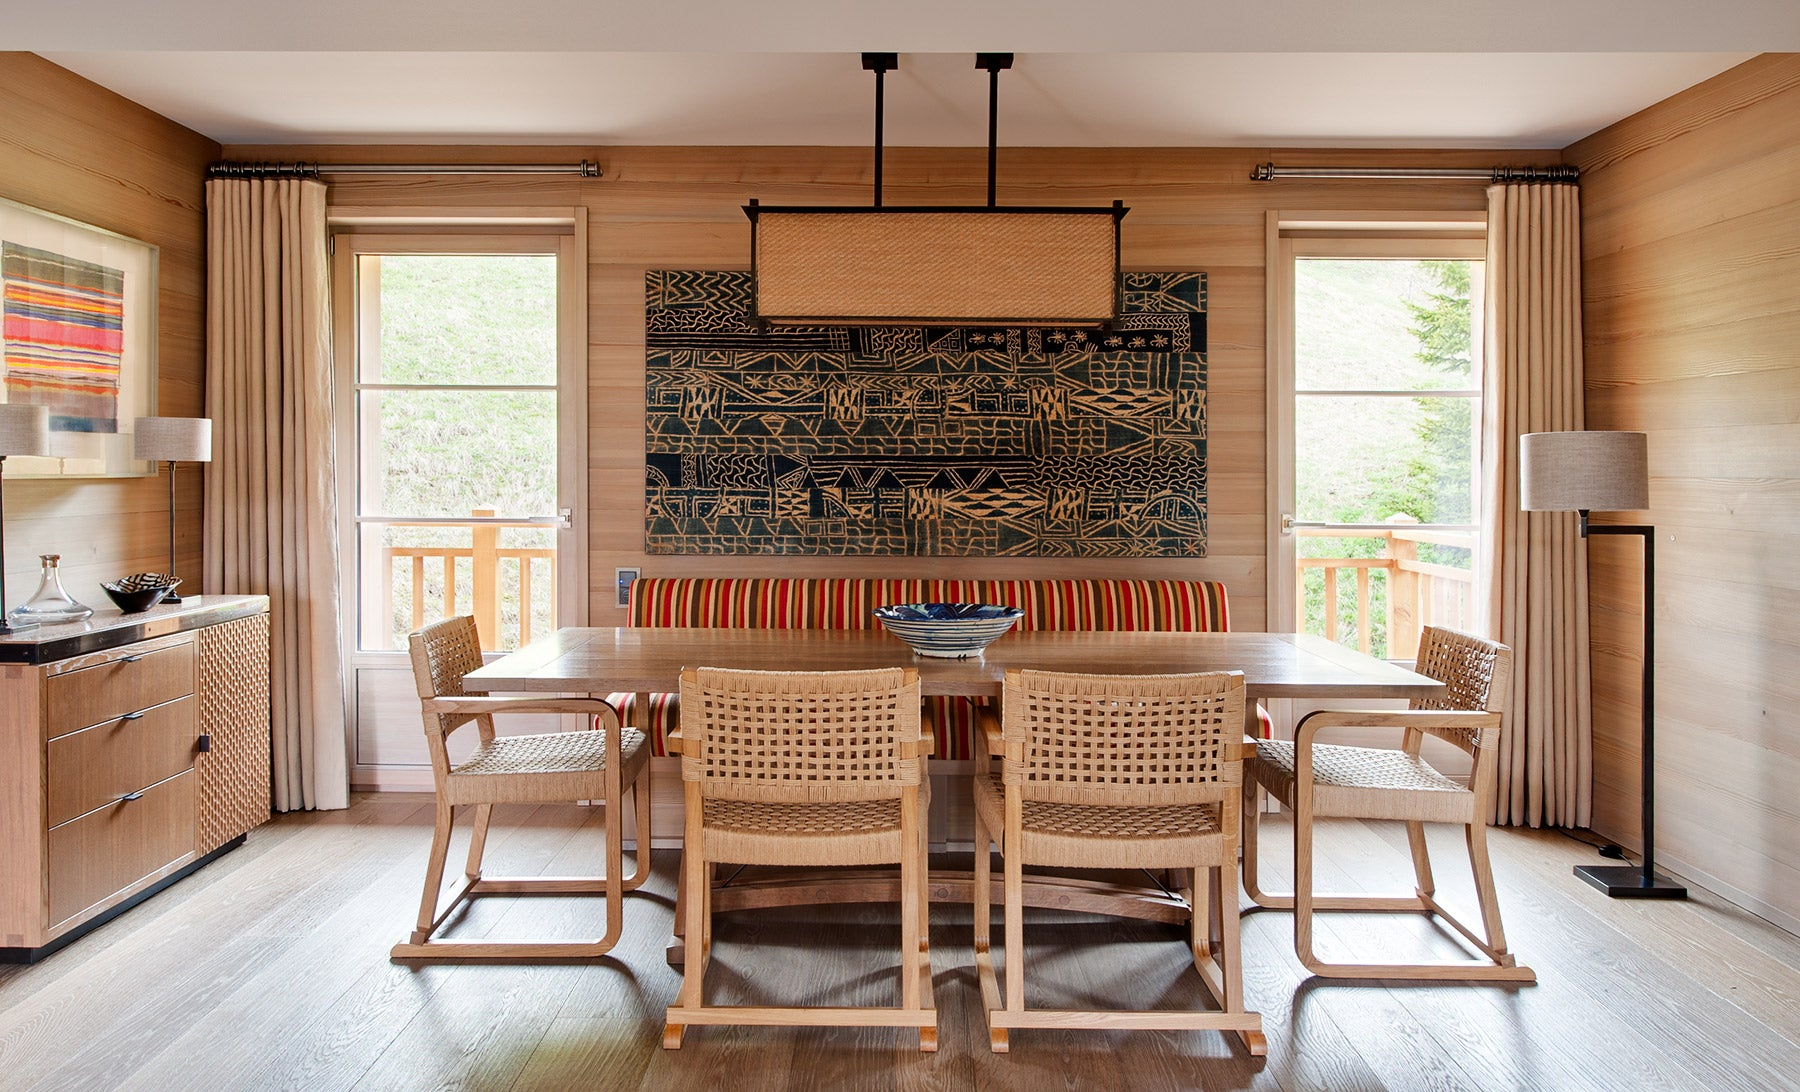 The dining room of a 1970s Swiss chalet, from Hugh Leslie